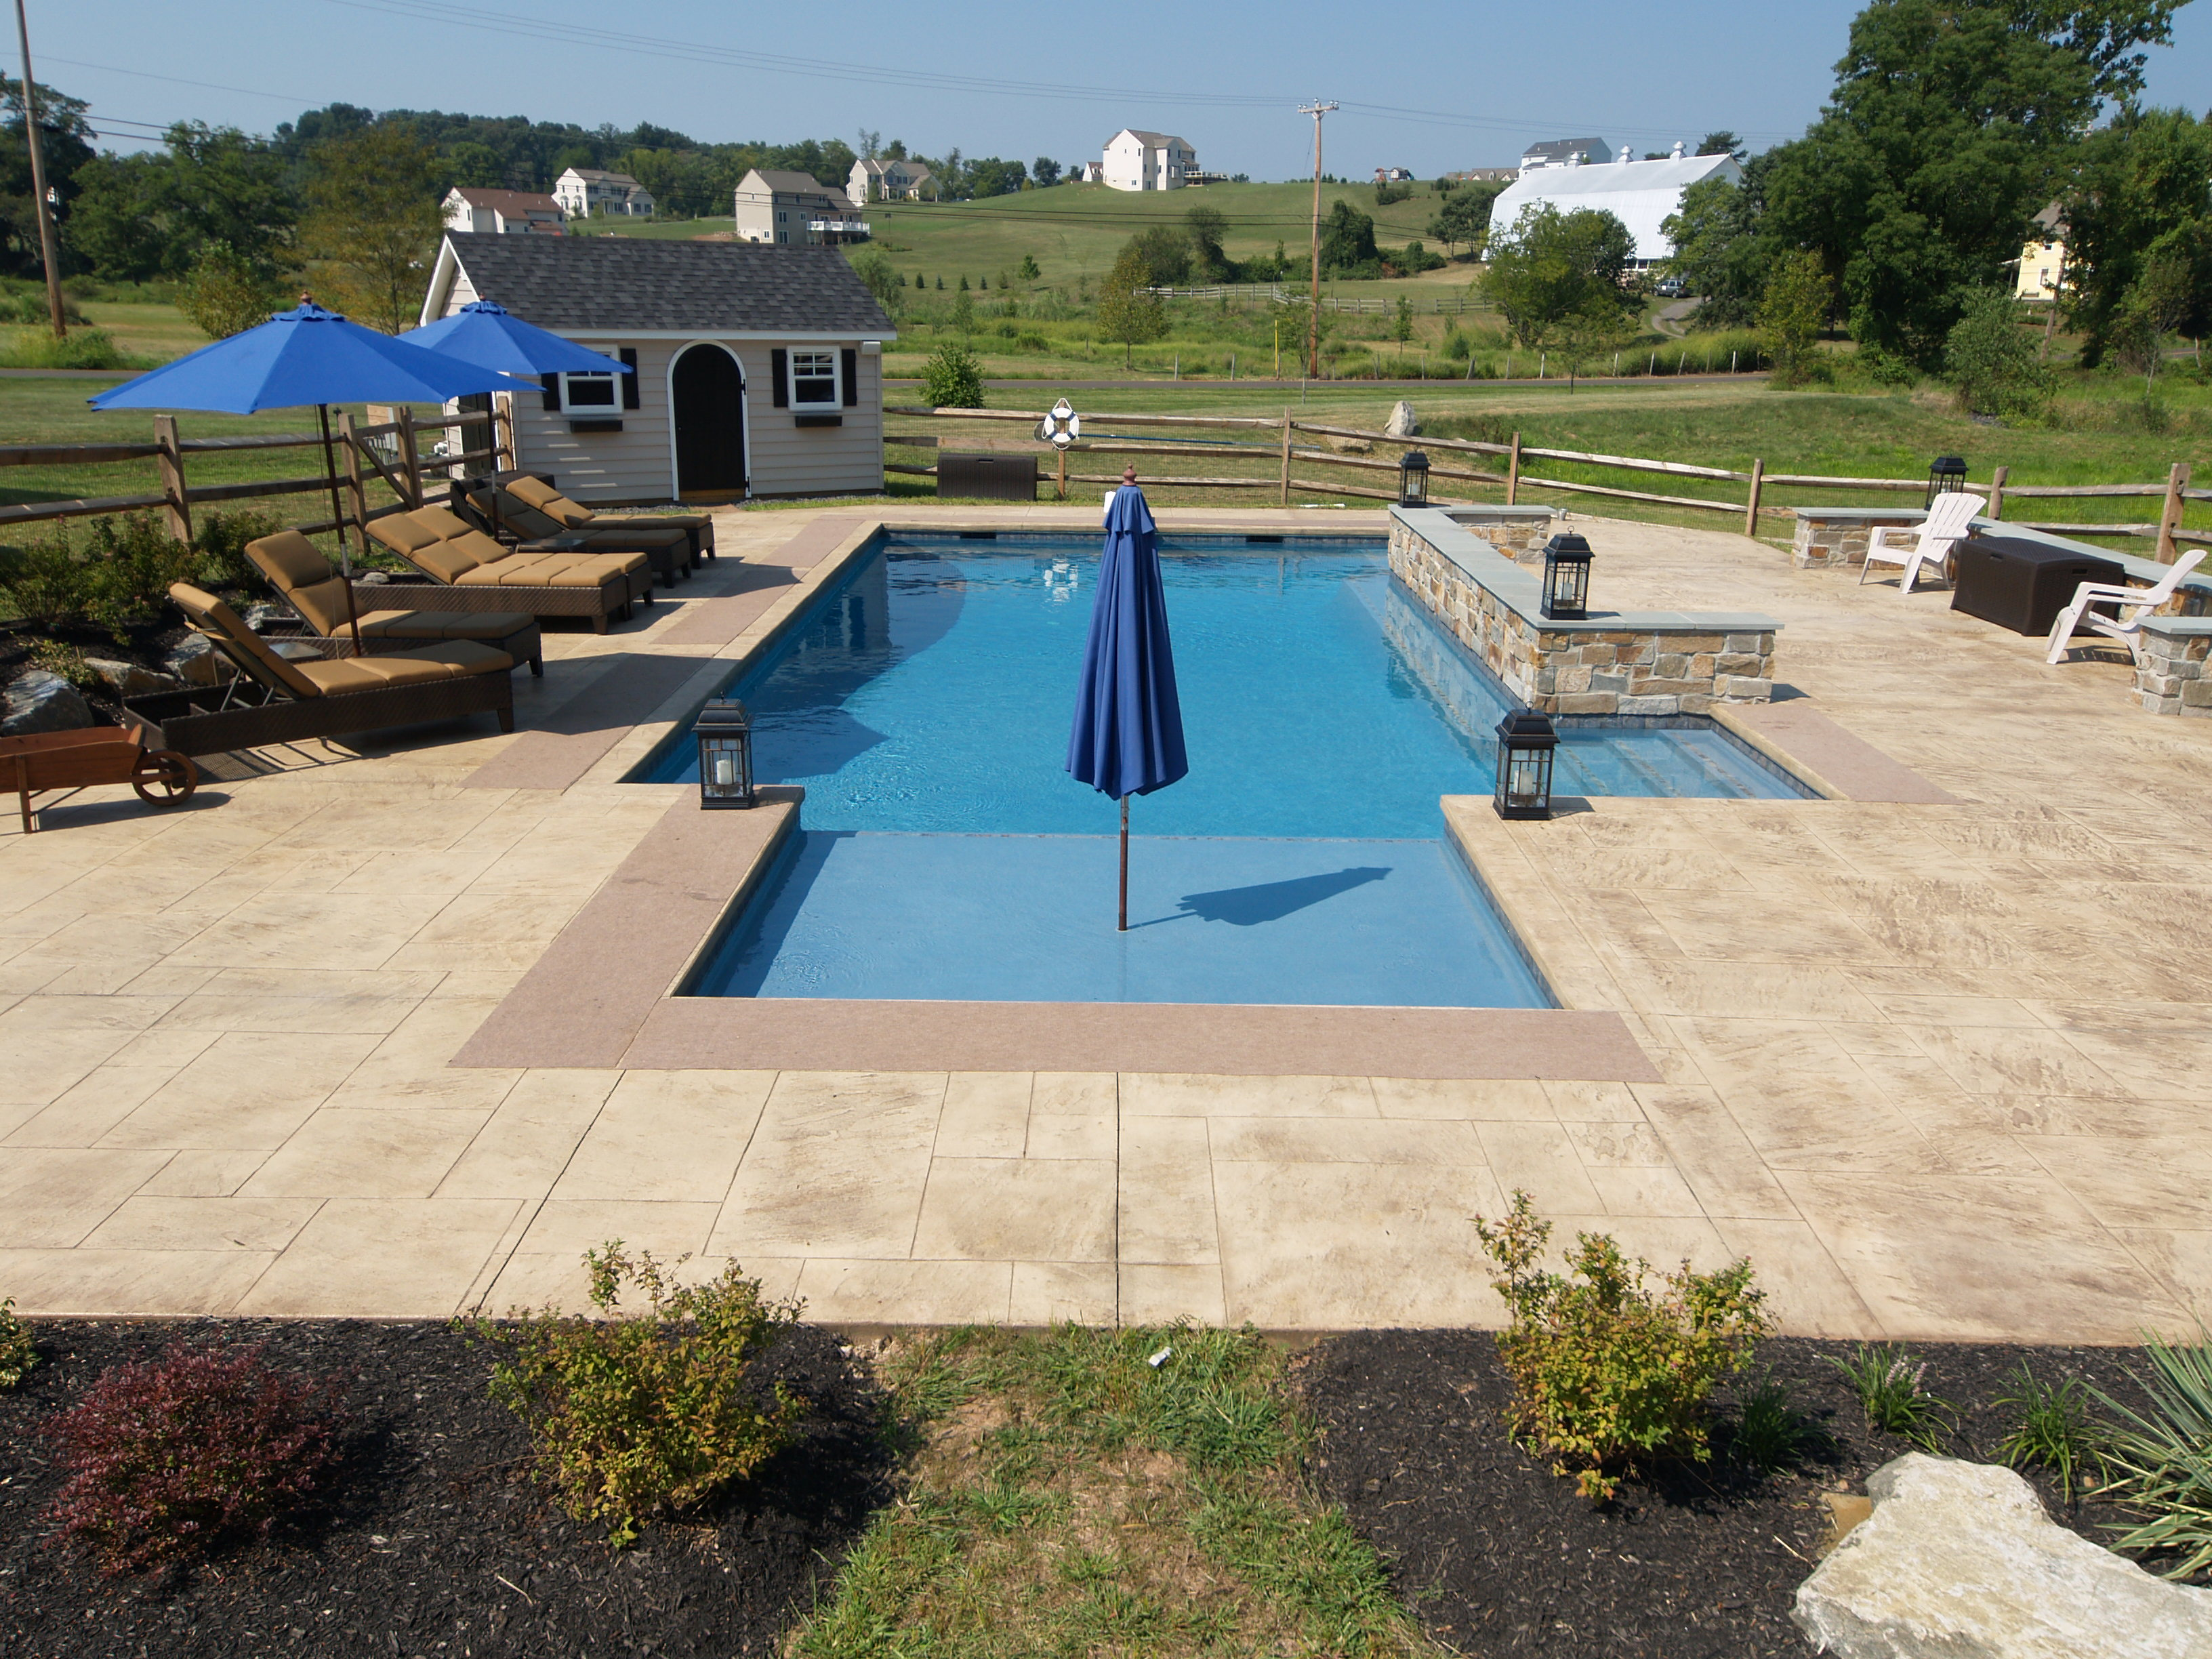 Gunite pools pool builders swimming pool design for Gunite pool design ideas